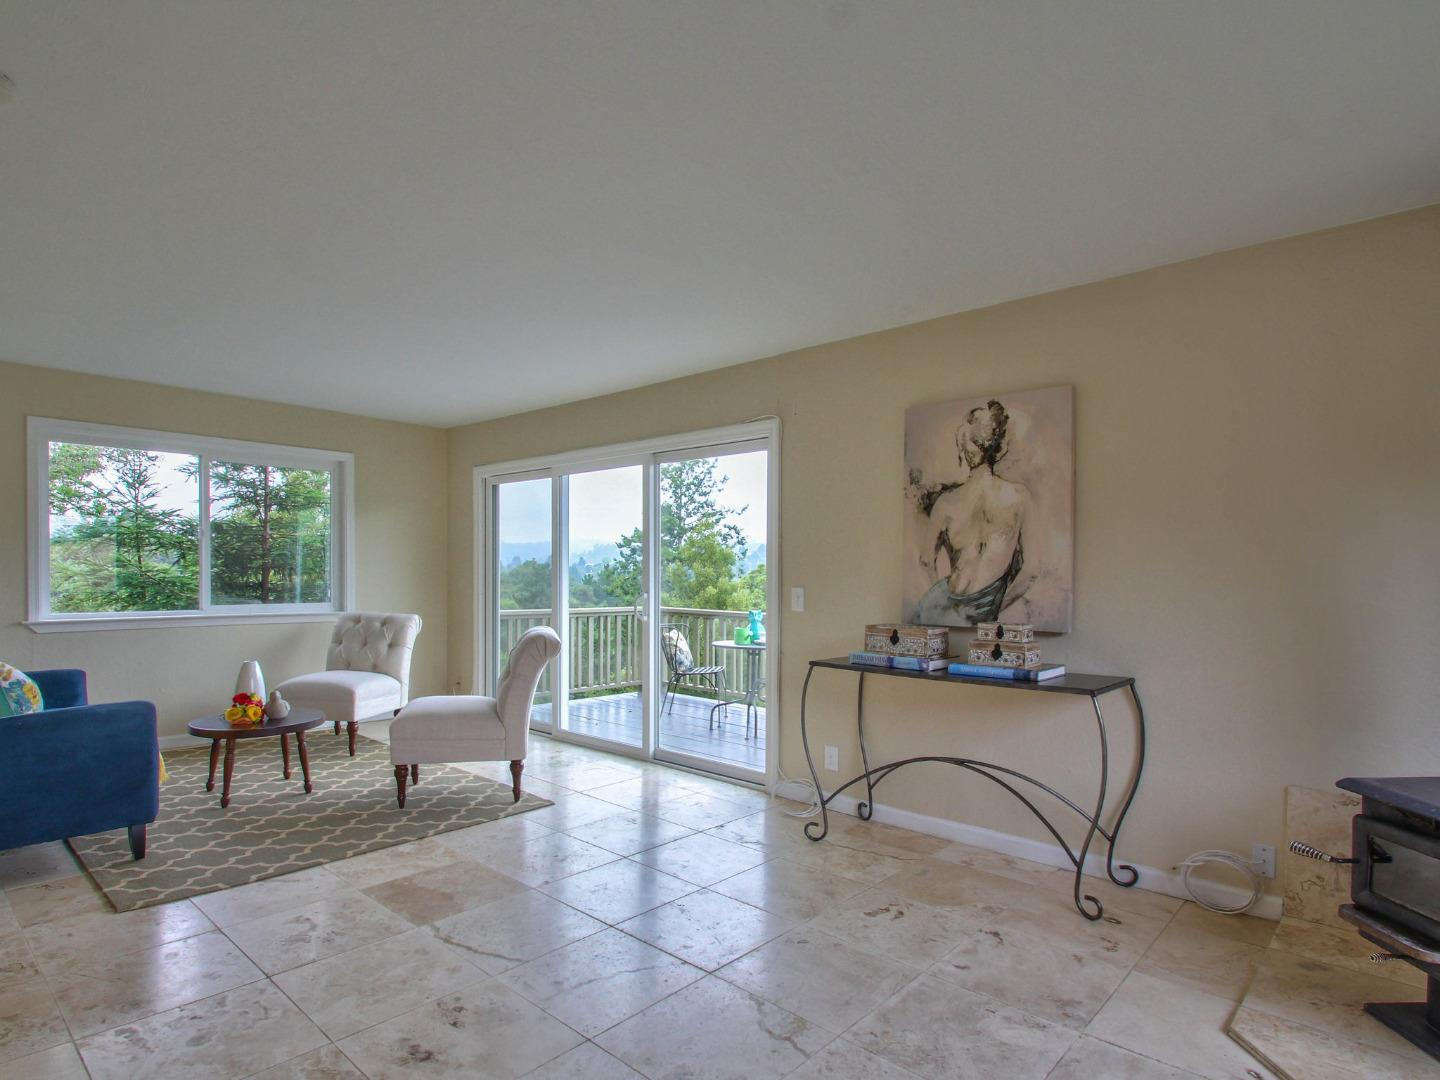 Additional photo for property listing at 911 Vista Del Mar Drive  Aptos, California 95003 United States